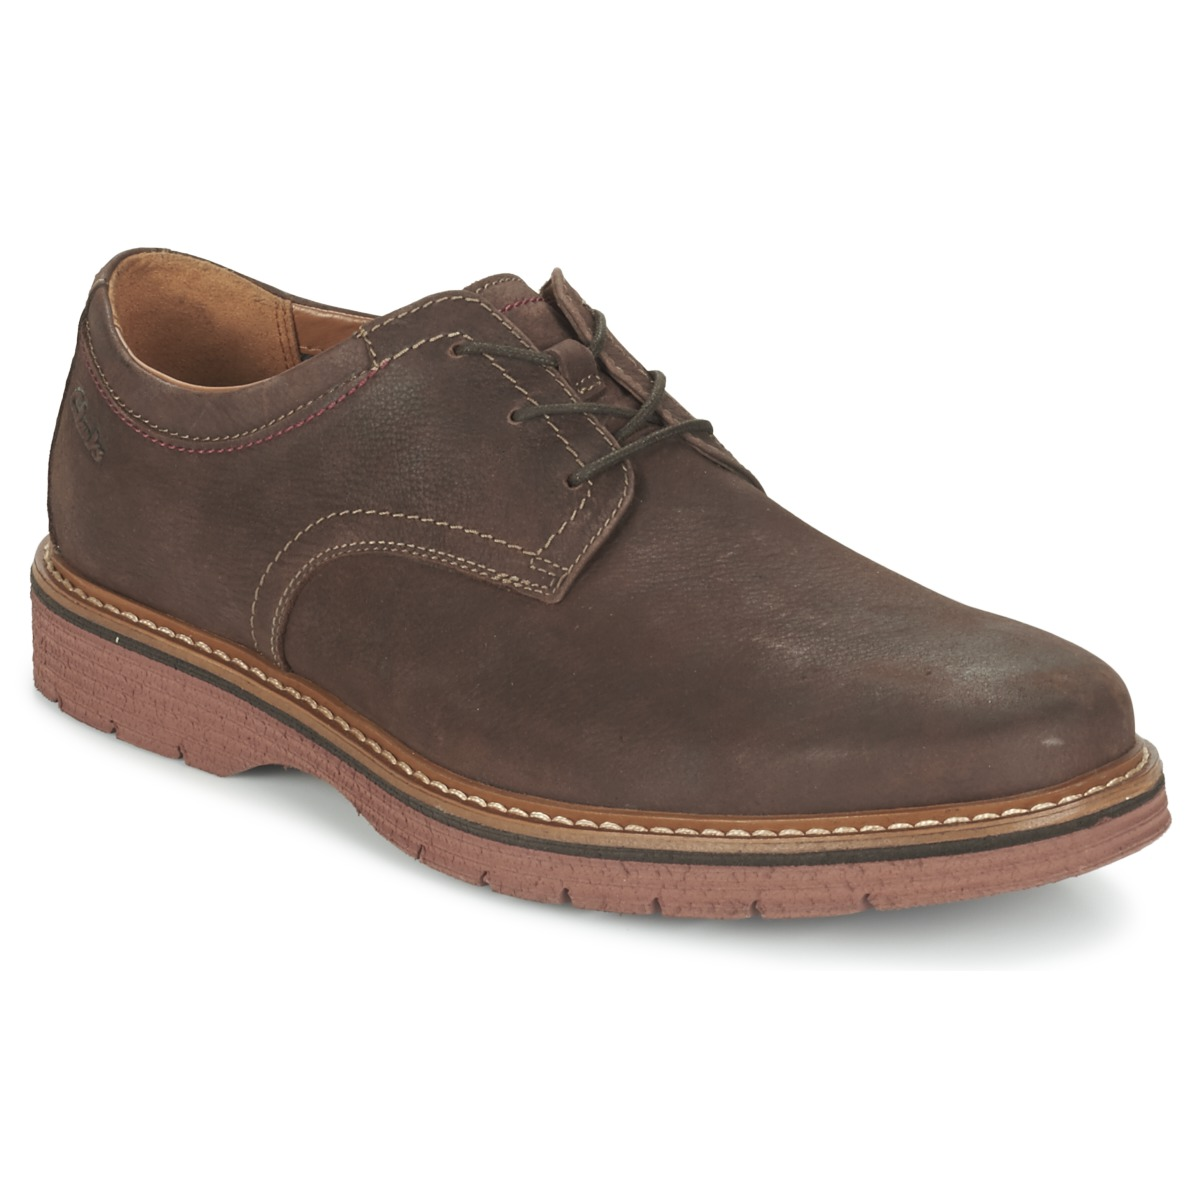 Clarks NEWKIRK PLAIN Marron